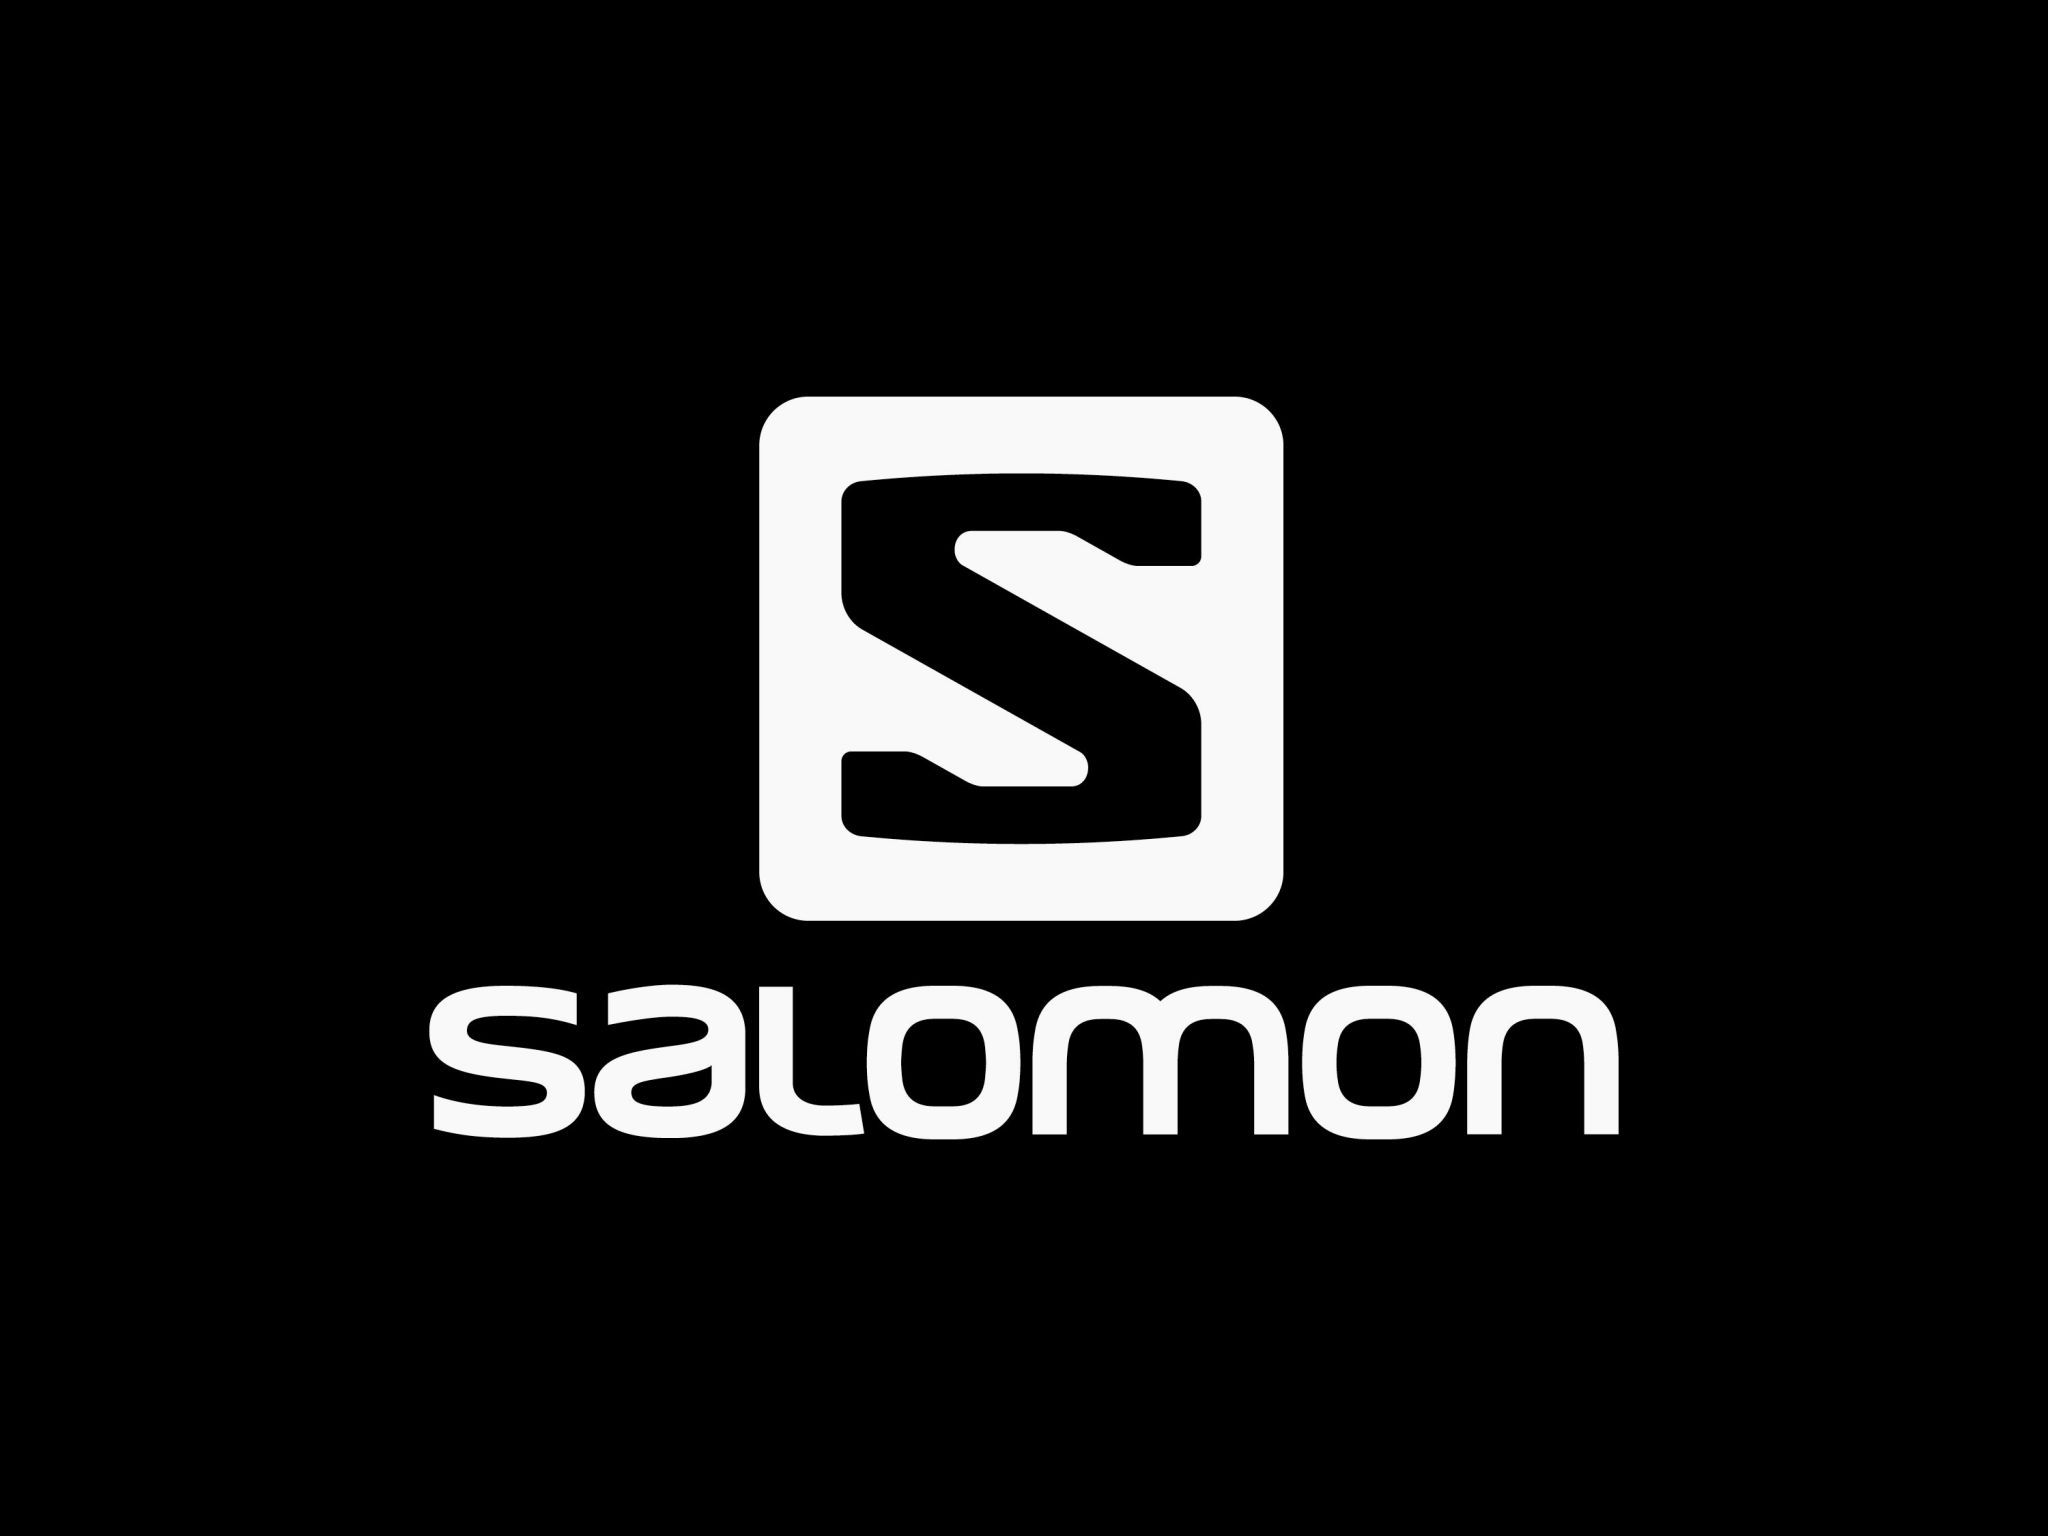 Salomon Coupons & Promo Codes